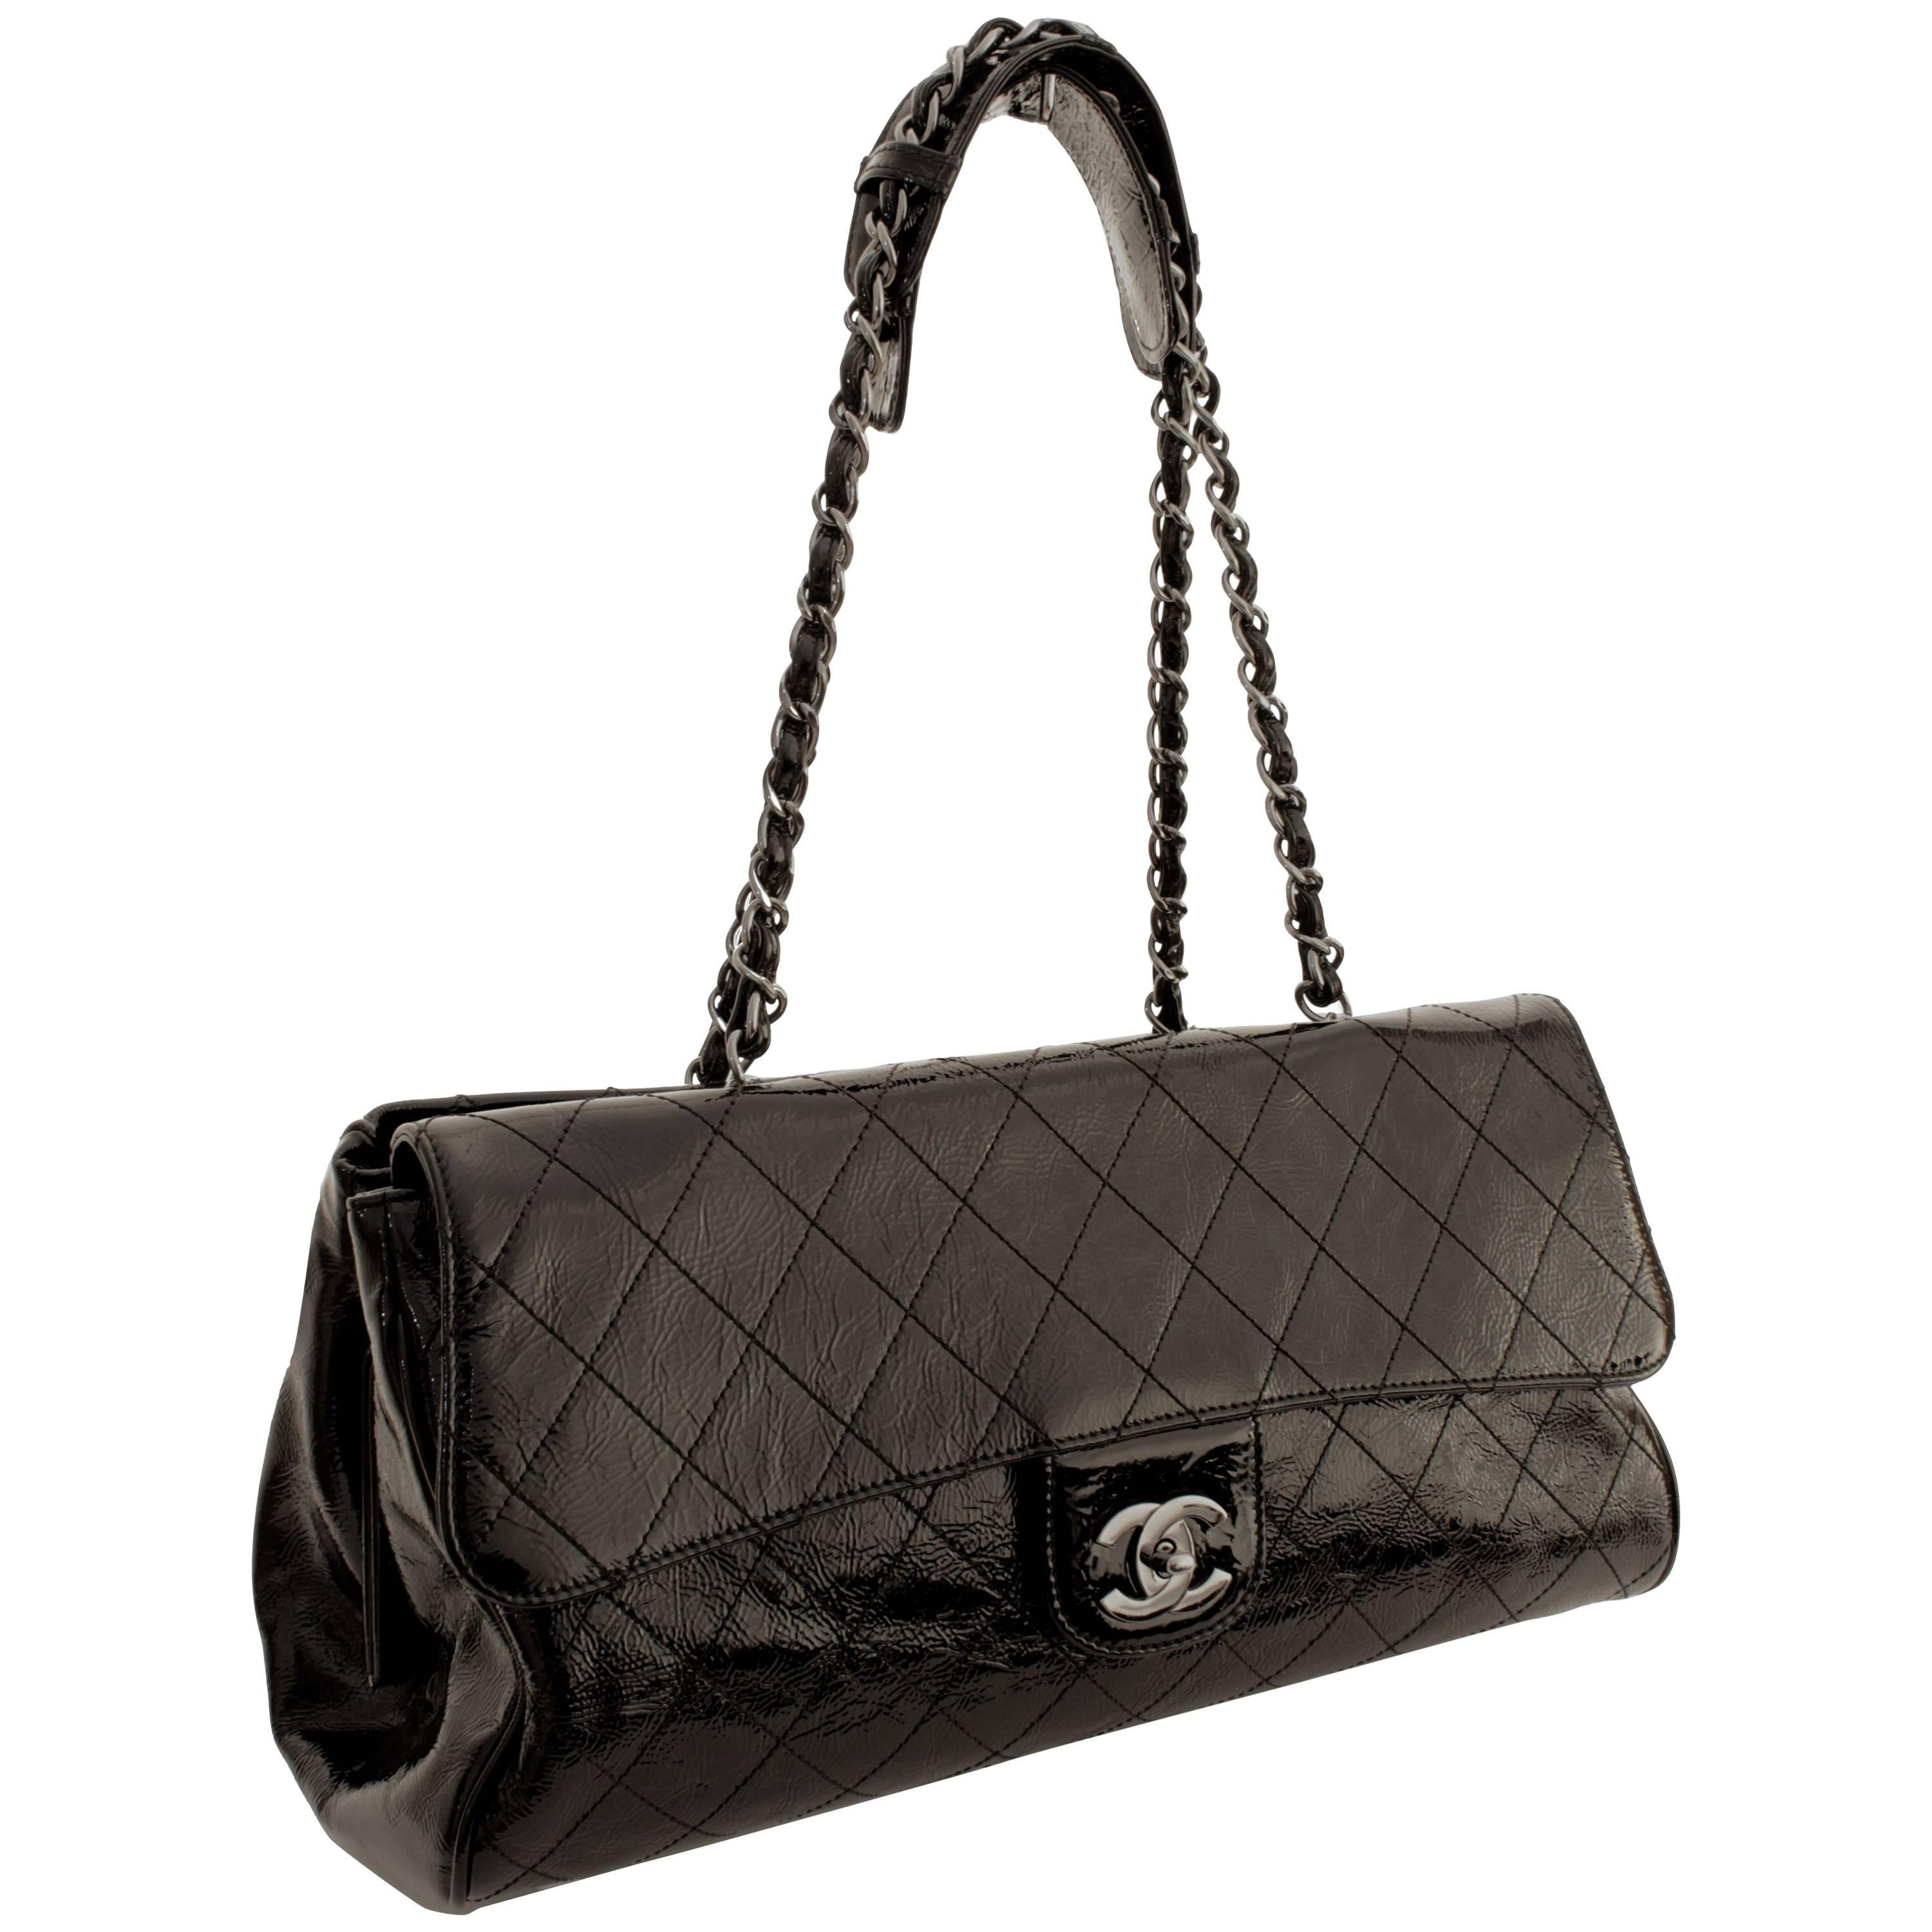 fd33c78a6885 Chanel Ritz Shoulder Bag Convertible Clutch Black Matelasse Patent Leather  For Sale at 1stdibs